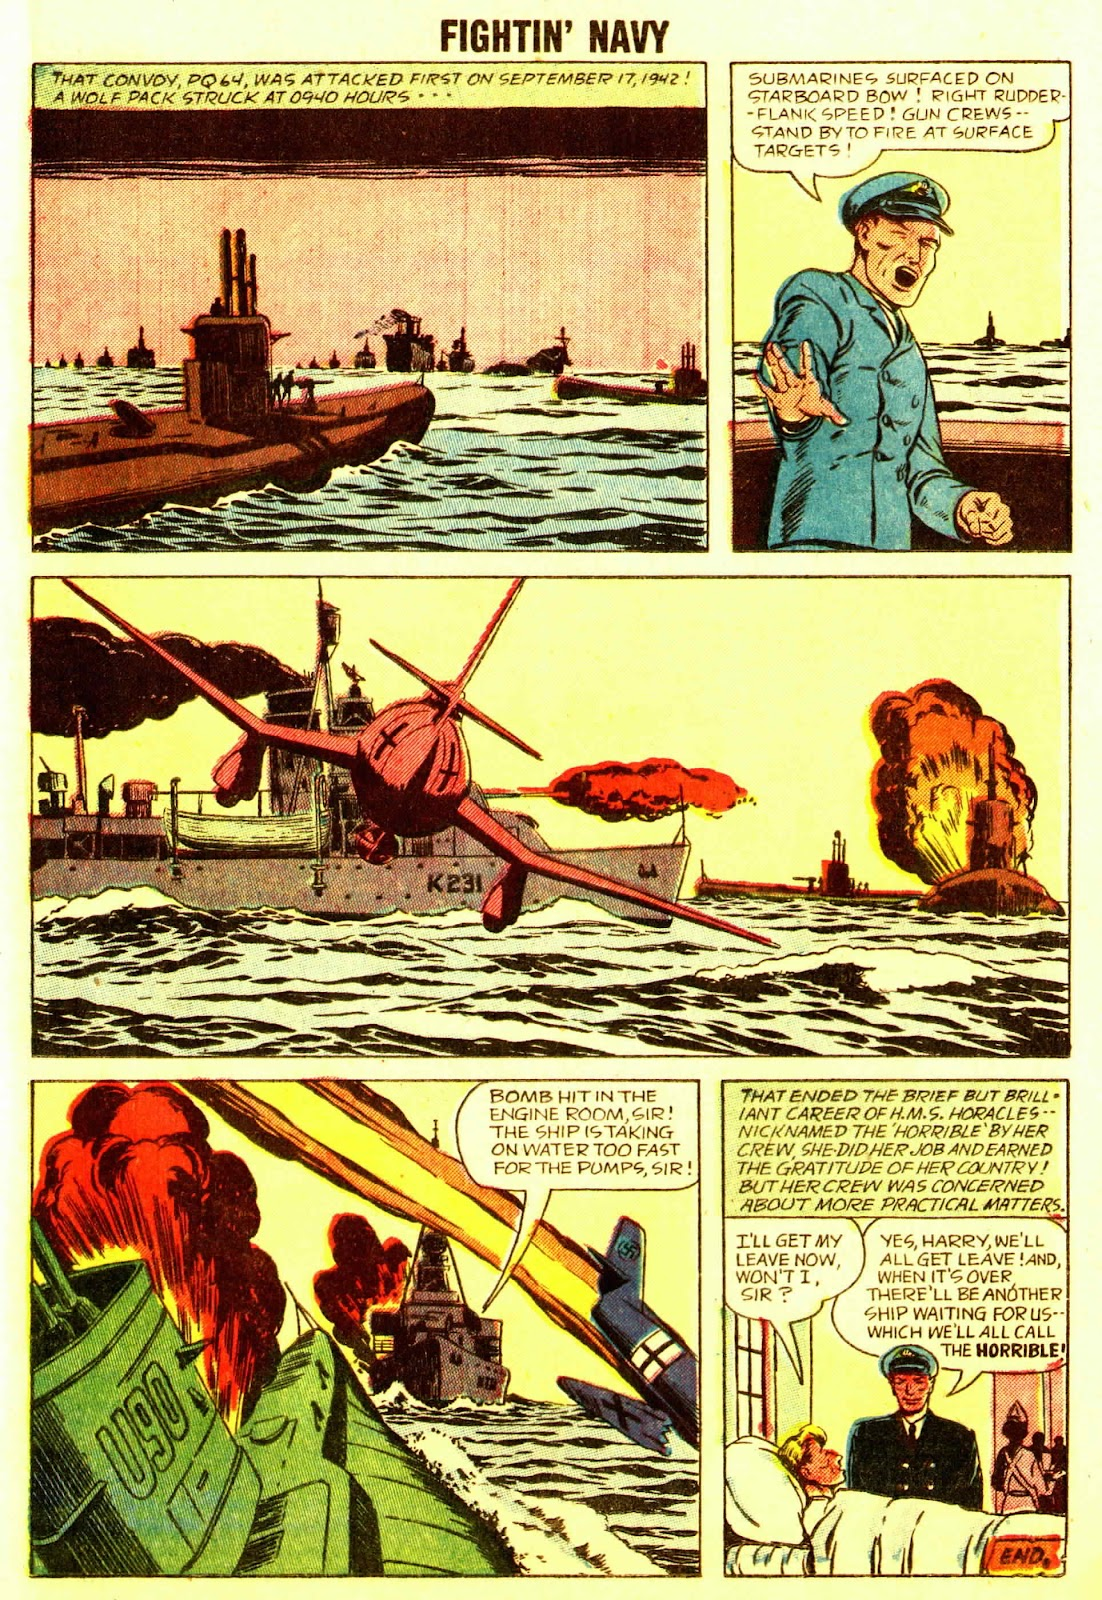 Read online Fightin' Navy comic -  Issue #83 - 47